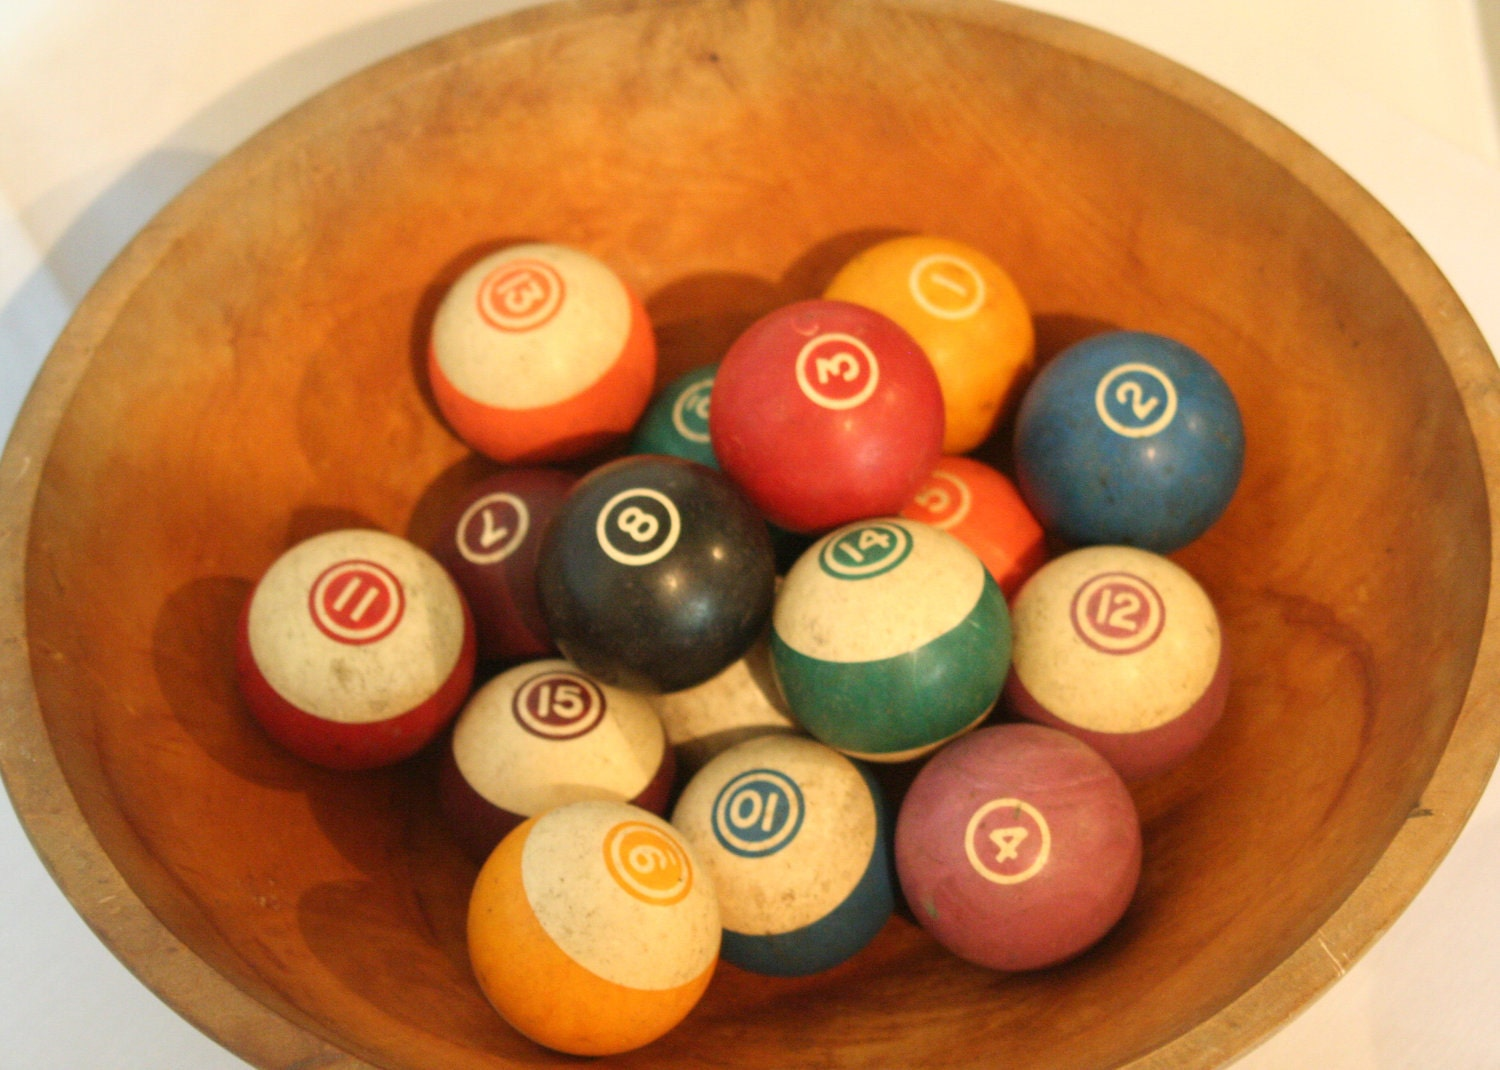 Vintage Pool Balls Billiards Theme Decorative Bowl Filler. Hgtv Yellow Living Room. Best Living Room Tv. Red Living Room Accessories Next. Decoration Ideas For Living Room Modern. Make My Living Room Look Better. Small Living Room Into Bedroom. Bookcase Decorating Ideas Living Room. Bar For My Living Room